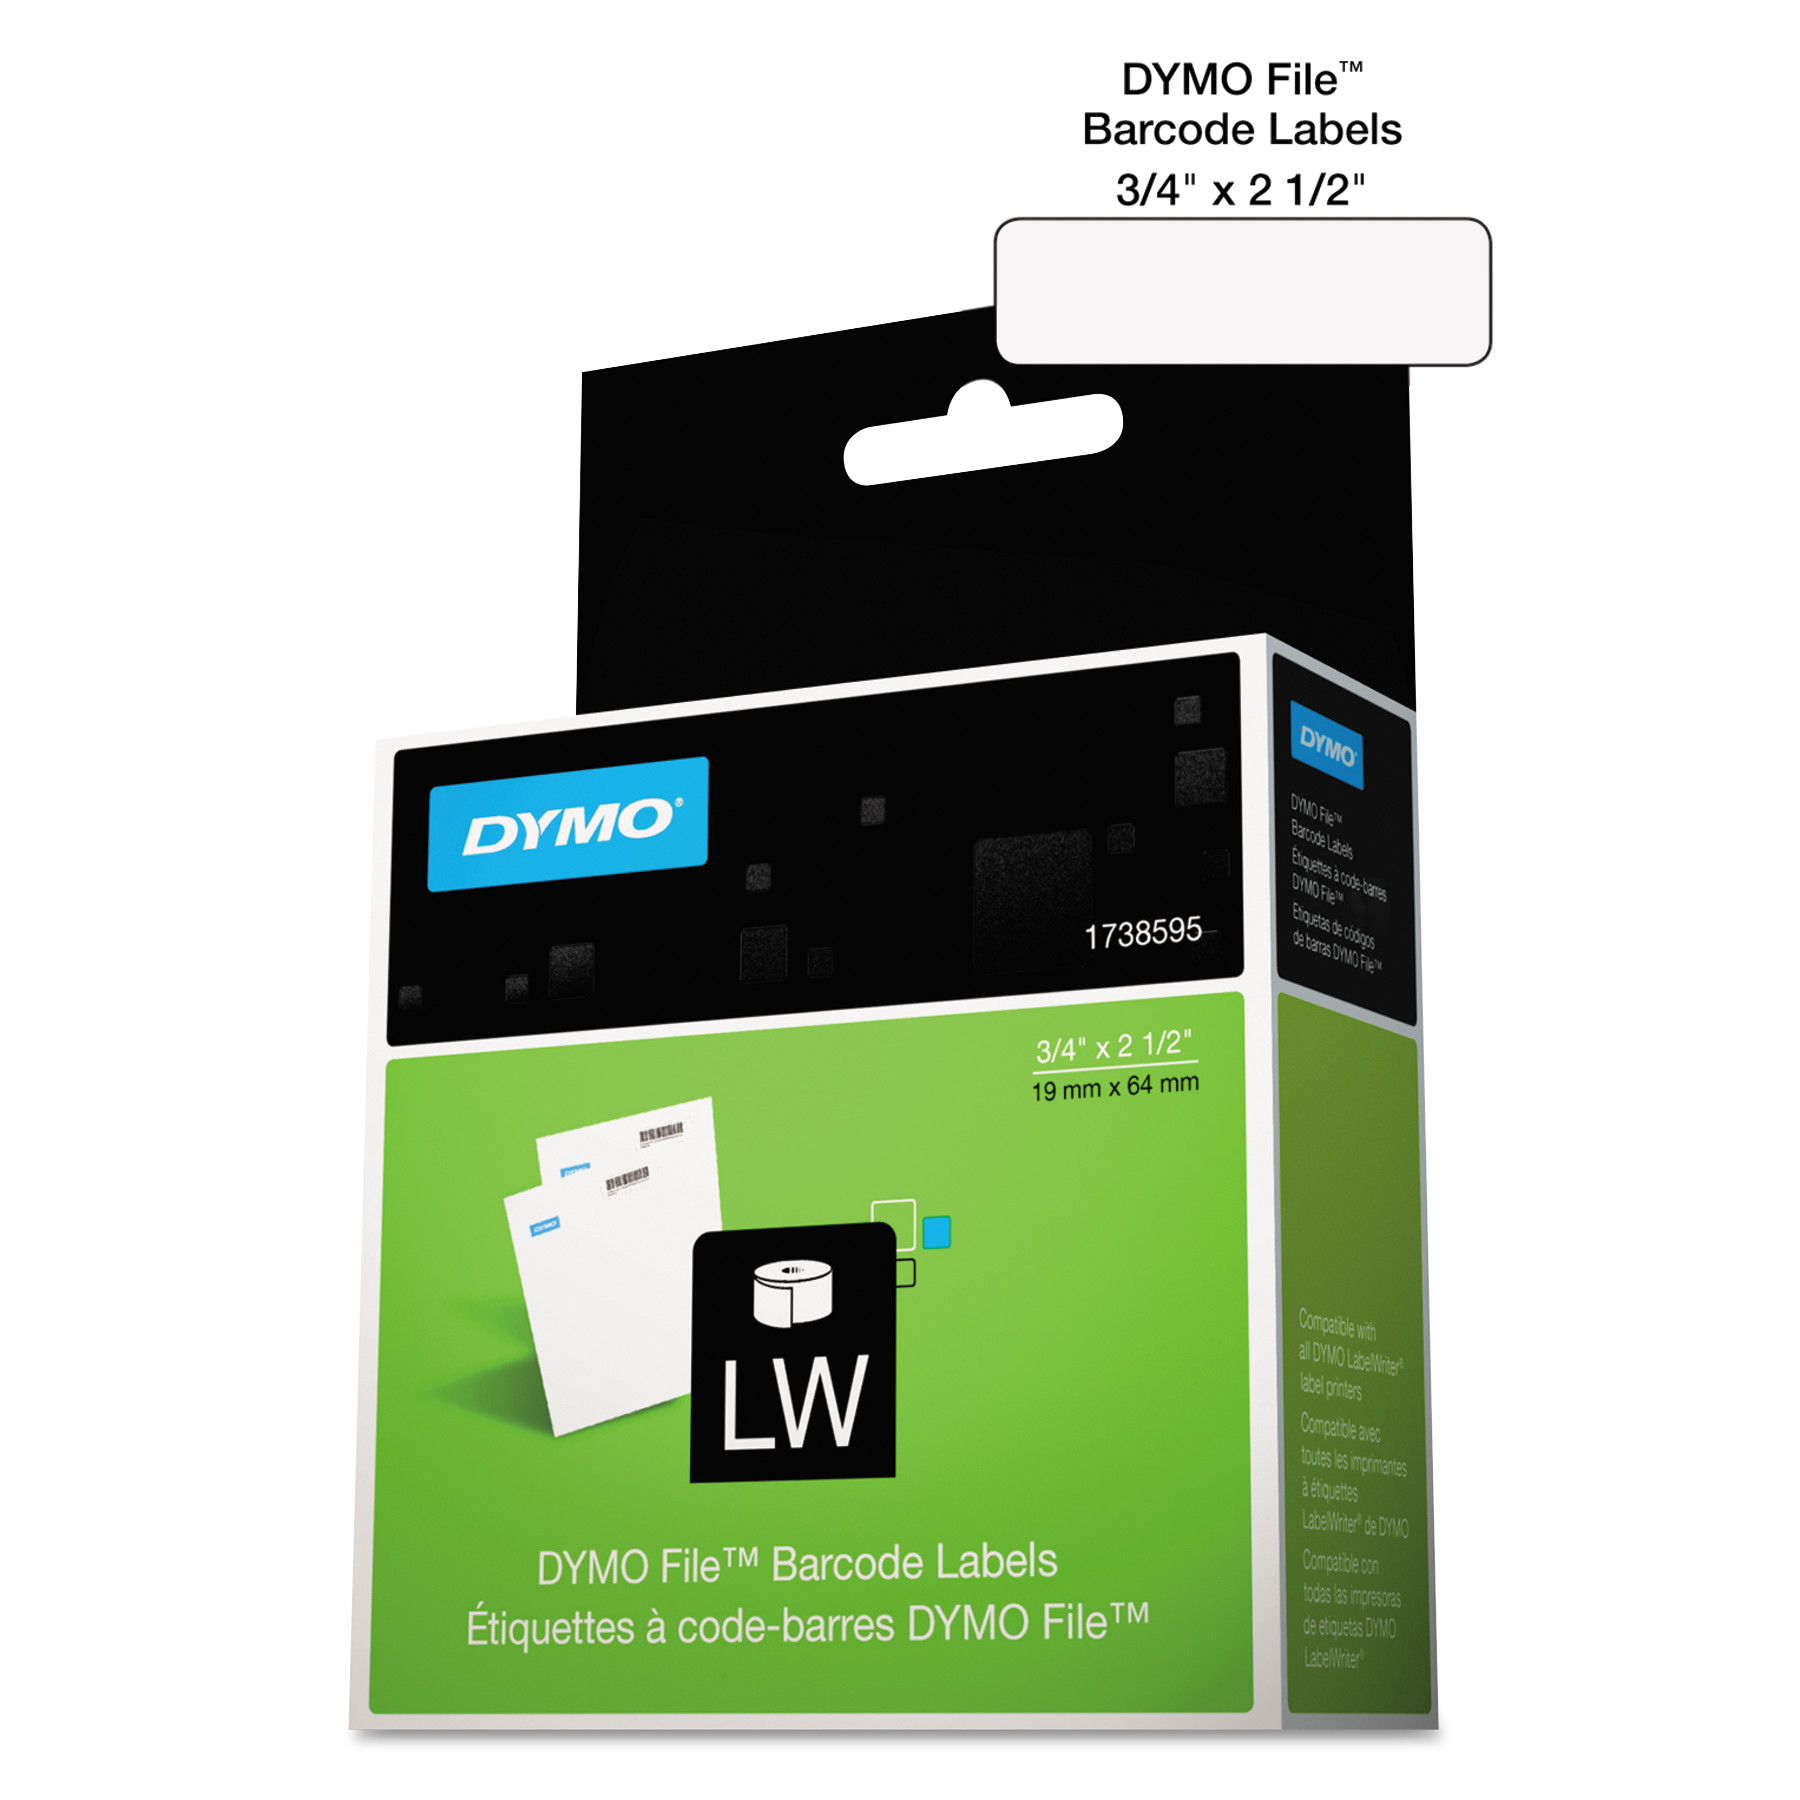 DYMO LabelWriter Bar Code Labels, 3/4 x 2 1/2, White, 450 Labels/Roll